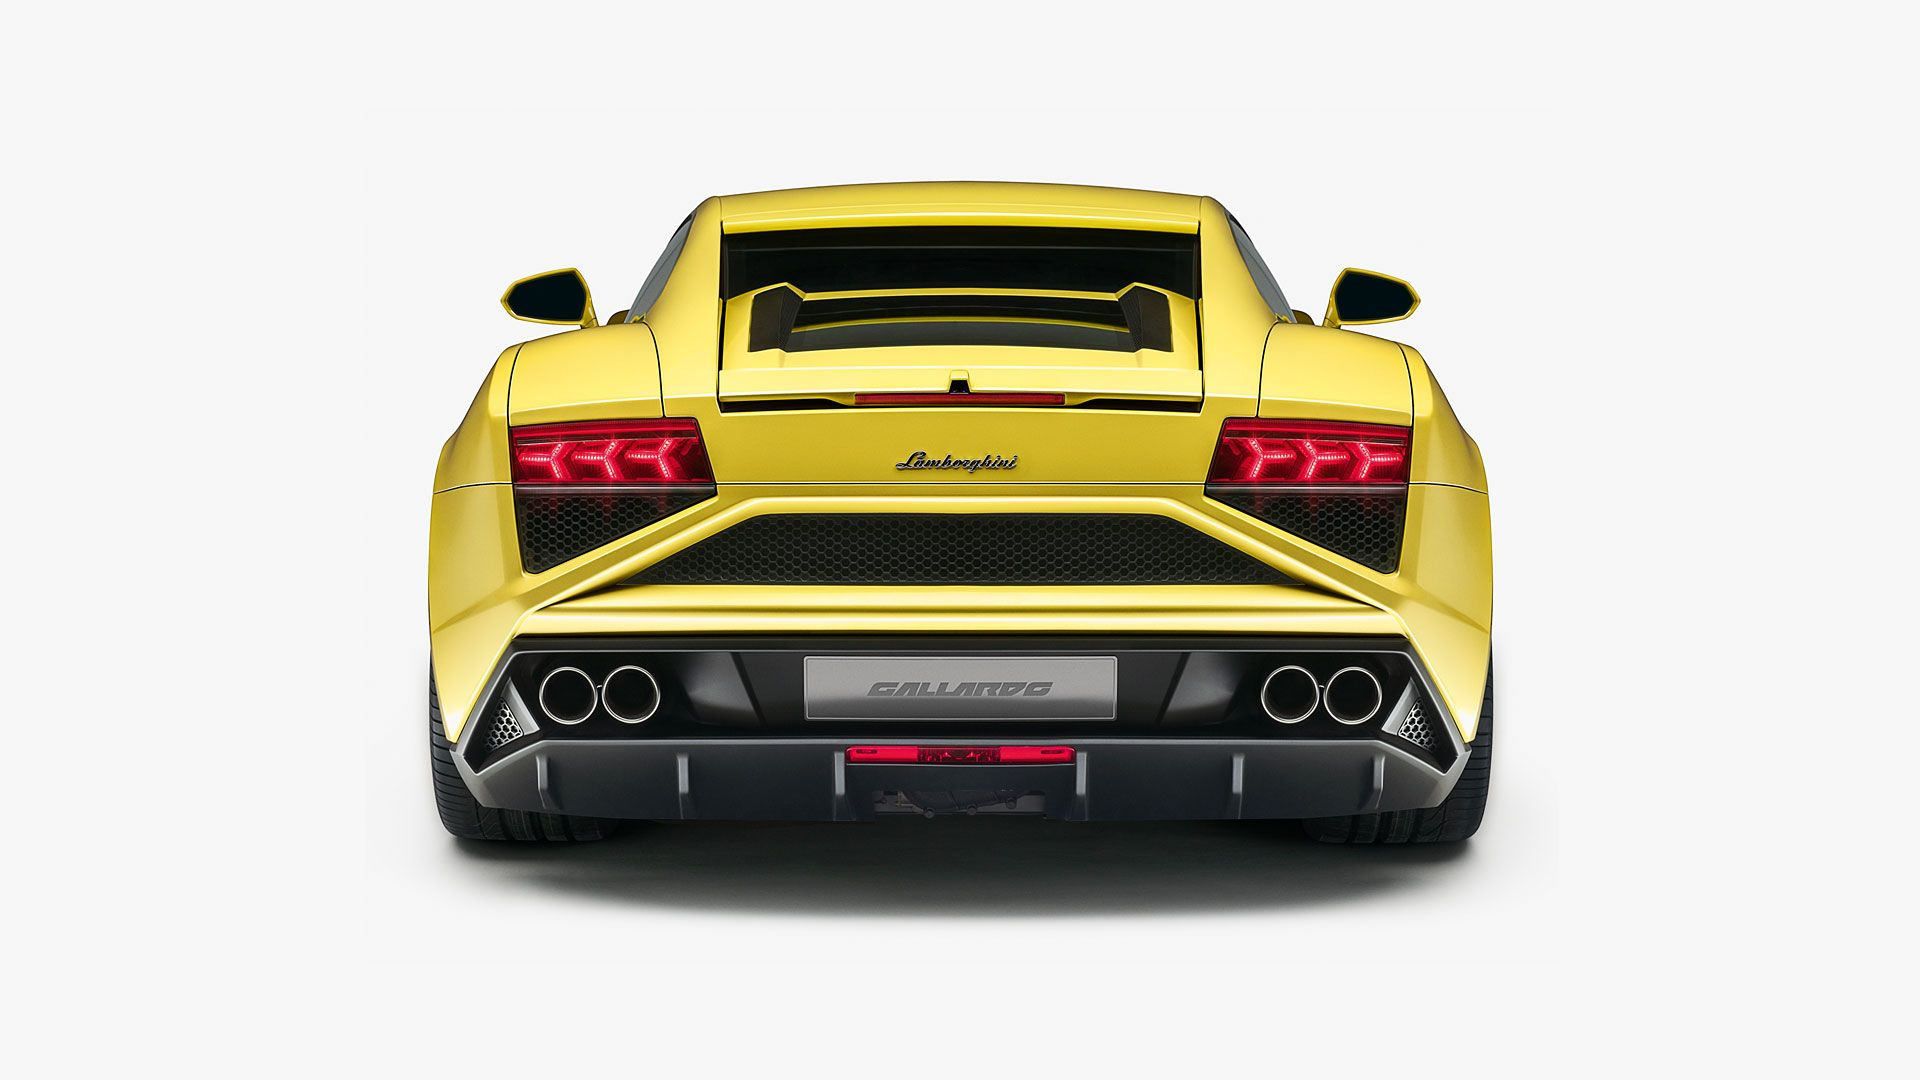 New Gallardo LP Official Website Of Automobili Lamborghini S. Since Italian  Luxury And Super Sports Cars Maker.